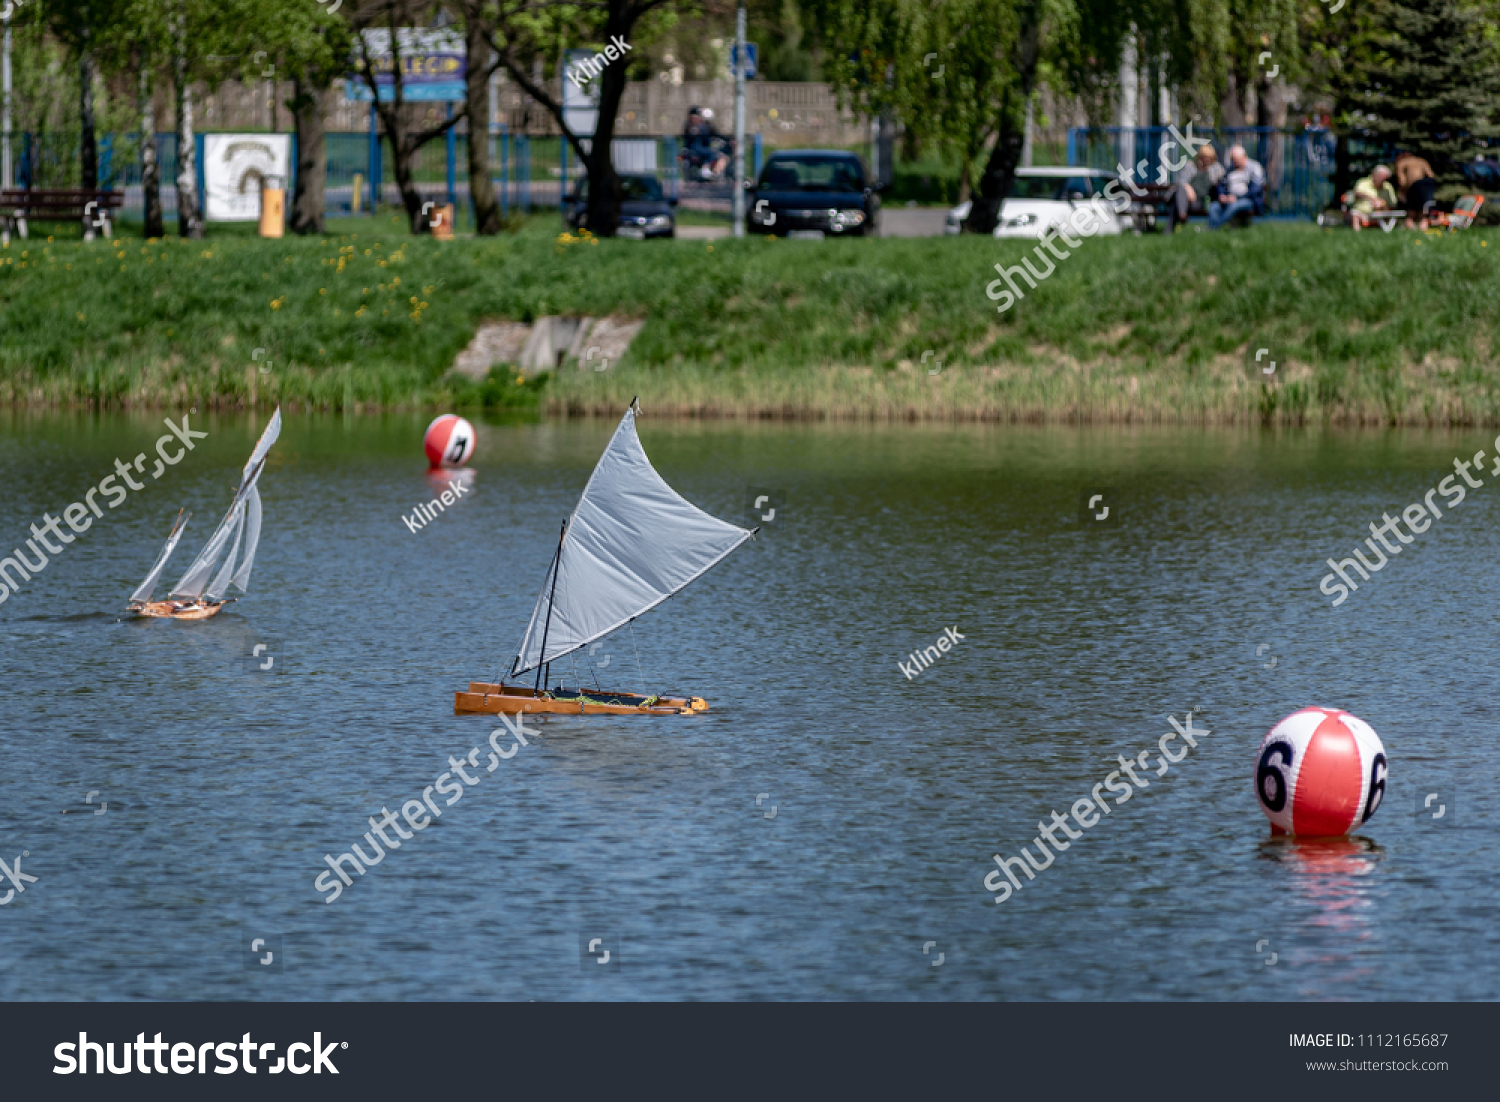 Rc Scale Sailing Model Ship Competitions Stock Photo (Edit